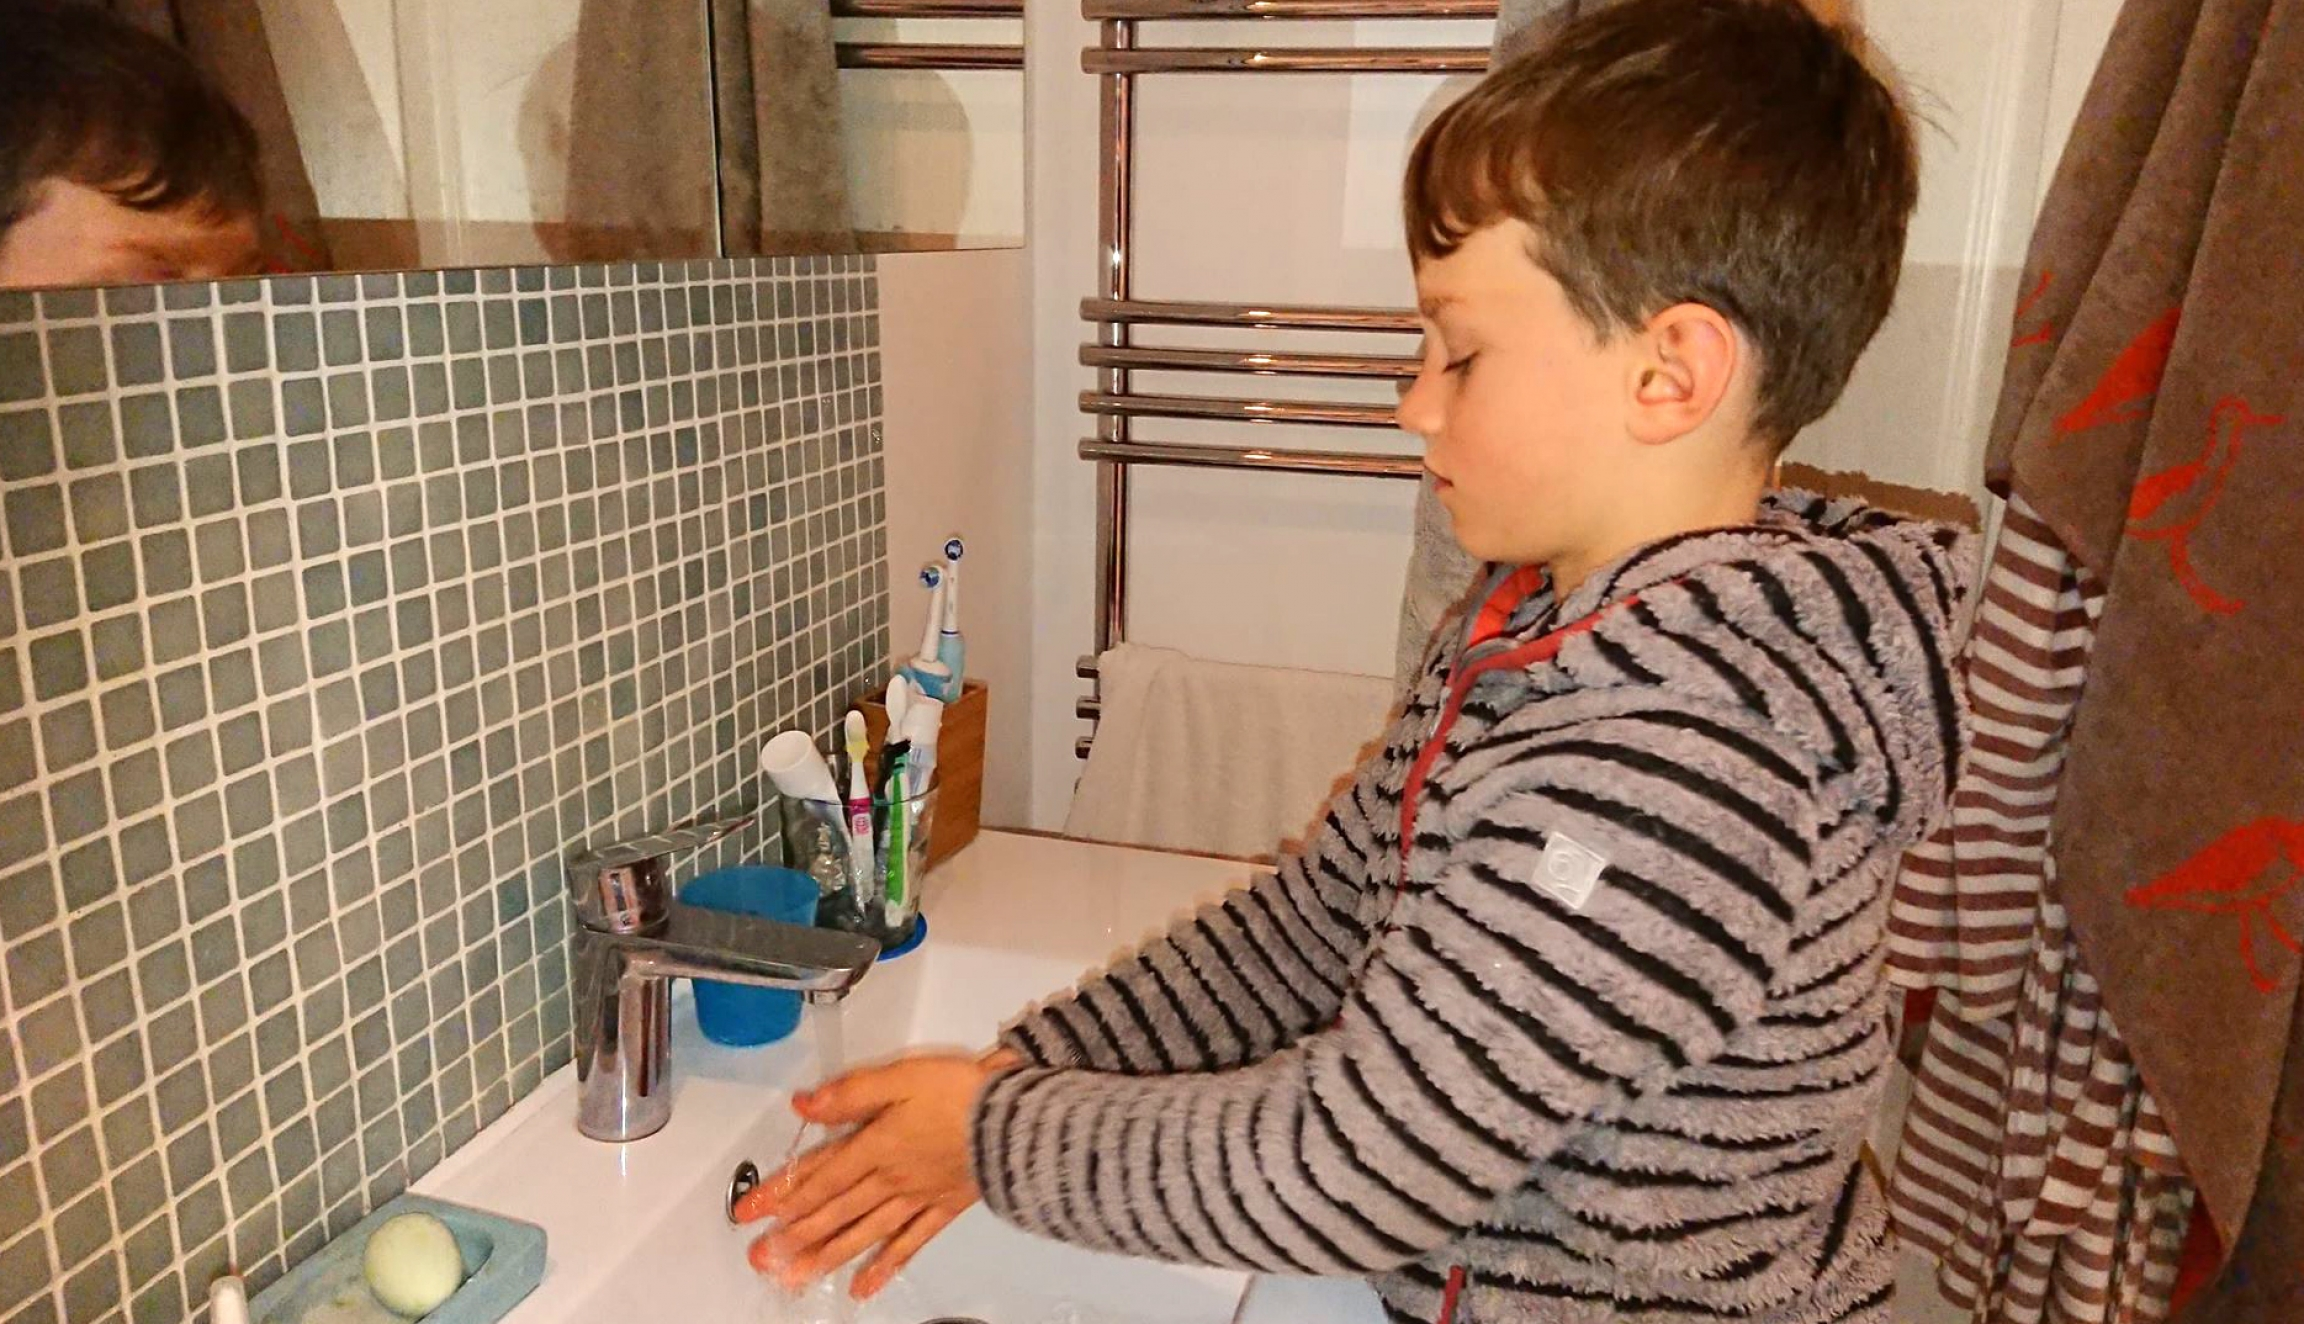 Jacob Gortmans demonstrates the proper 20-second hand-washing duration at his home in London.